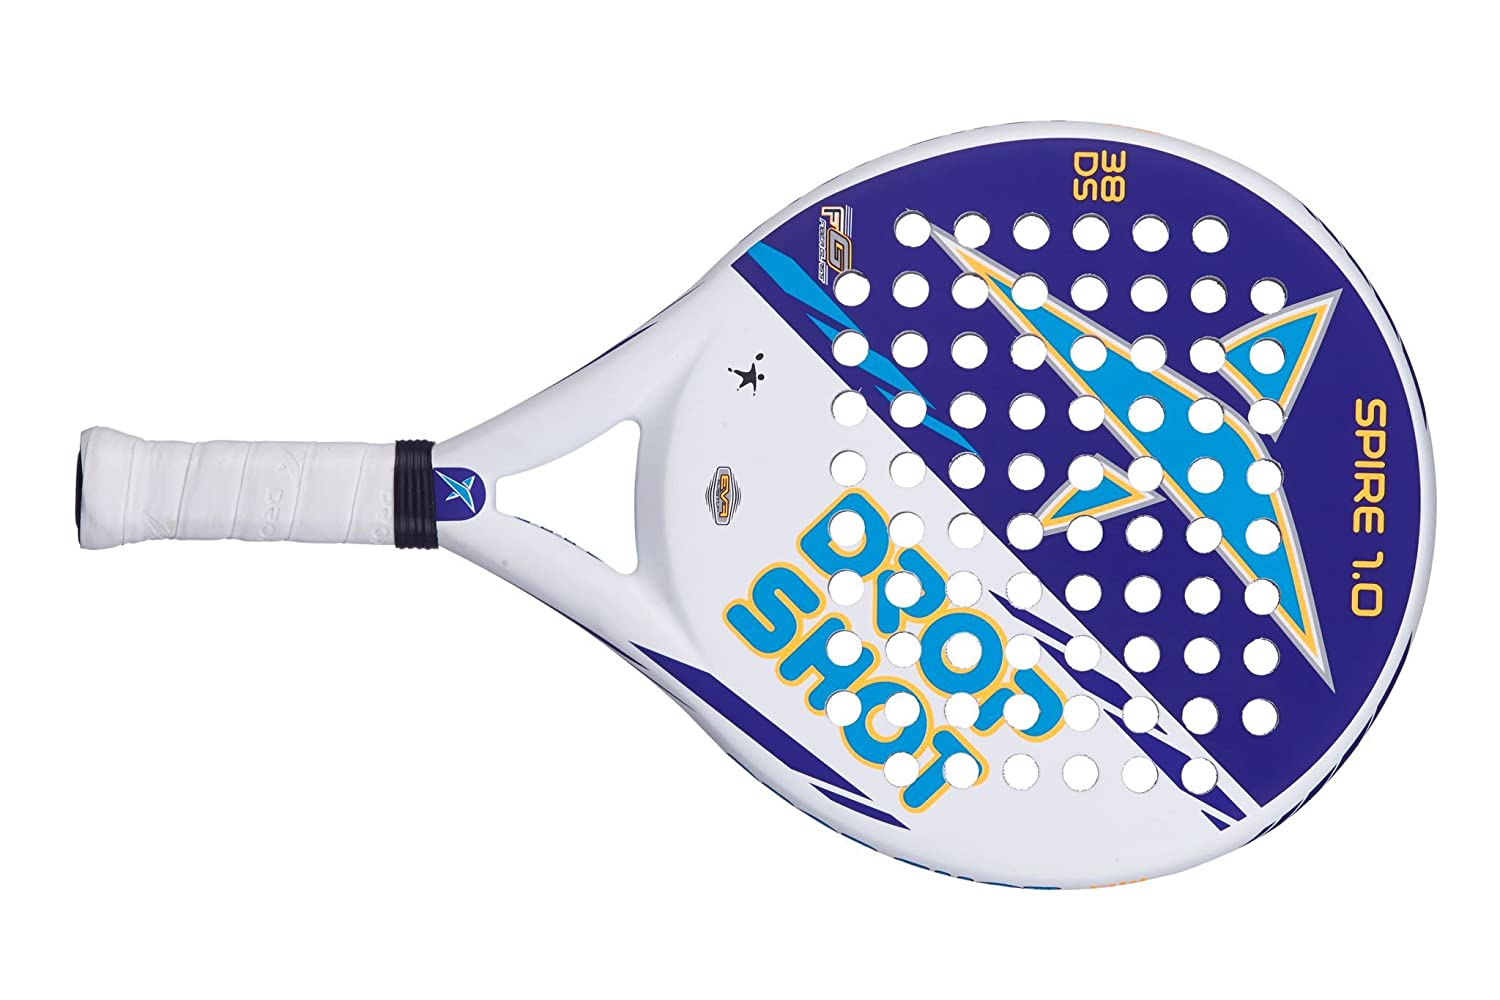 Amazon.com : Drop Shot Spire 1.0 Pop Tennis Paddle Racquet ...